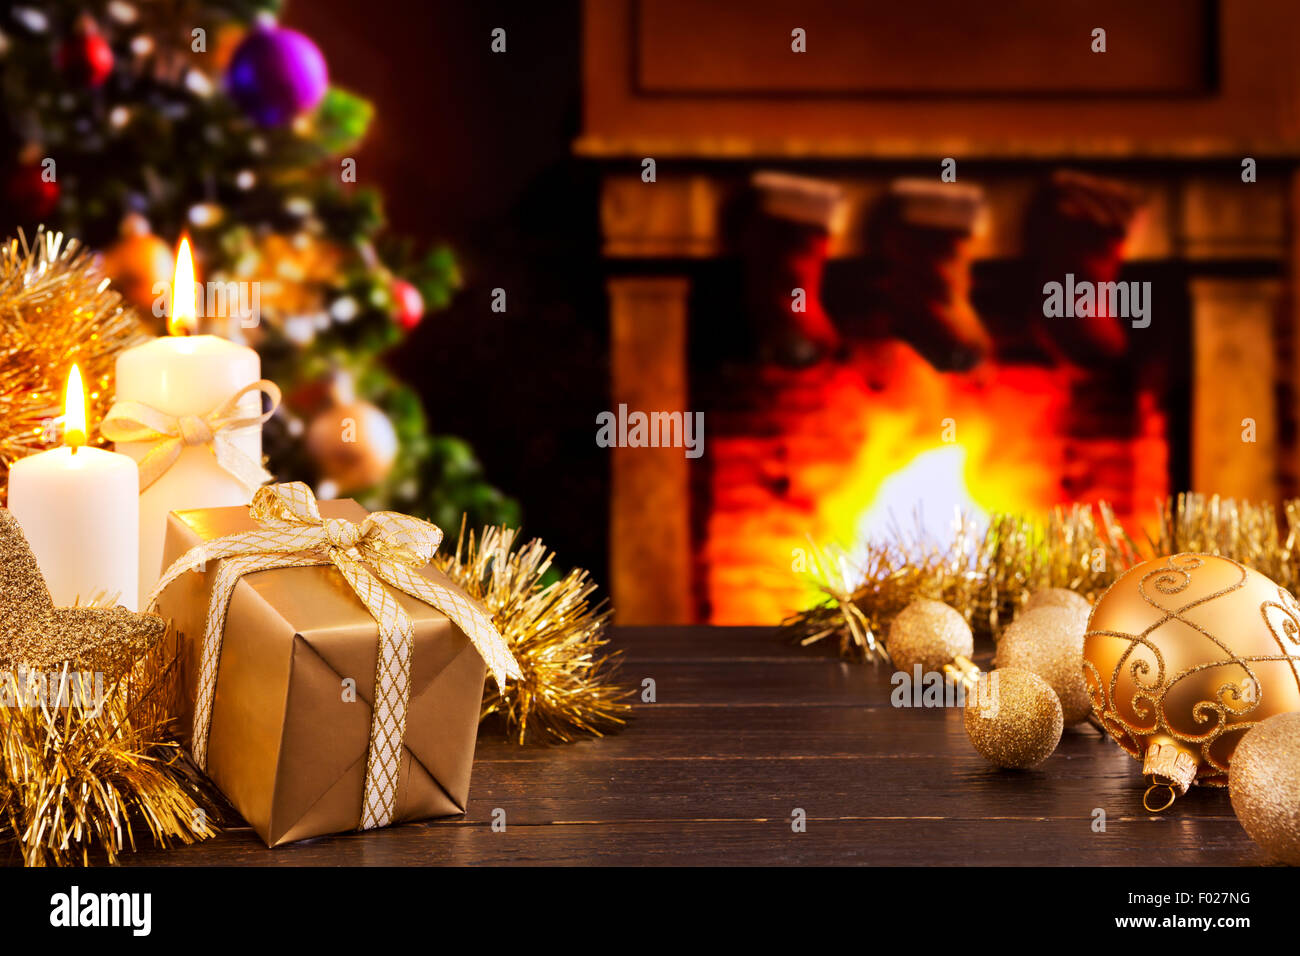 Christmas decorations, a gift and candles in front of a fireplace. A fire is burning in the fireplace. Stock Photo